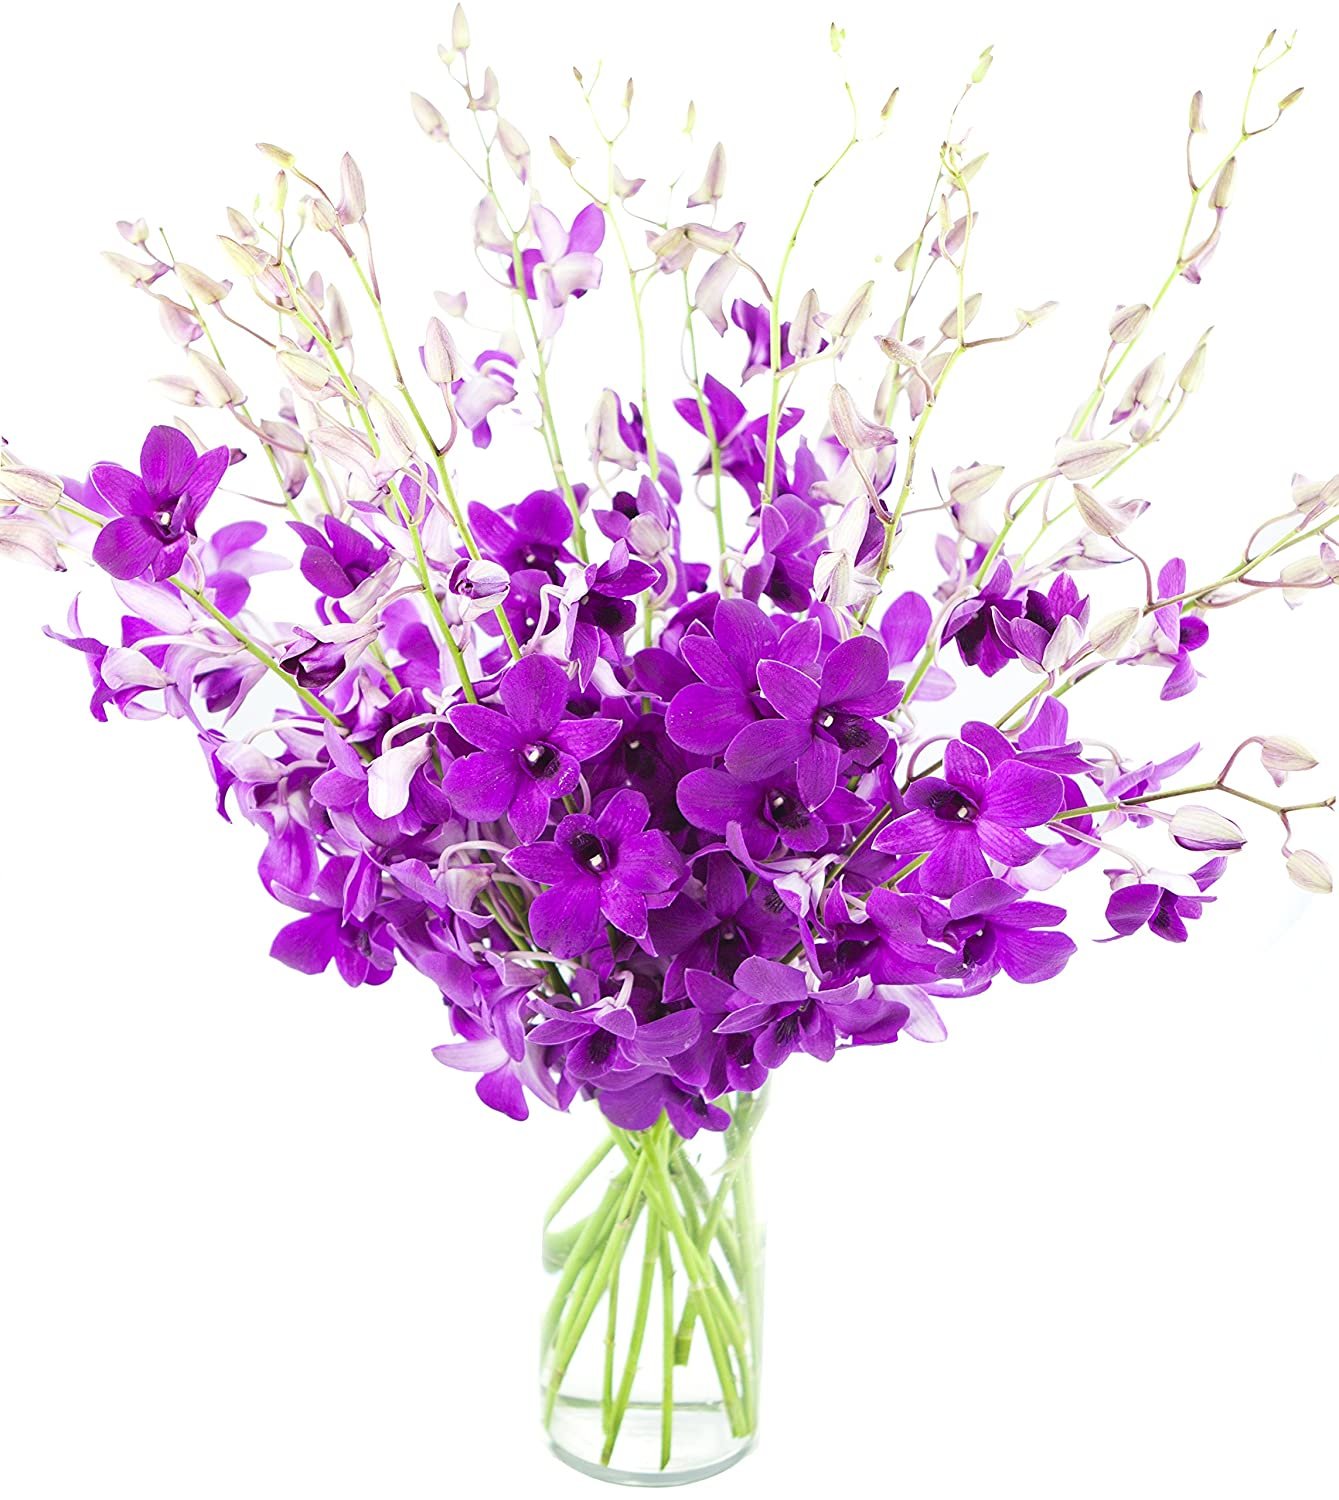 Ultimate Purple Dendrobium Orchid Bouquet (20 stems) - The KaBloom Collection Flowers With Vase